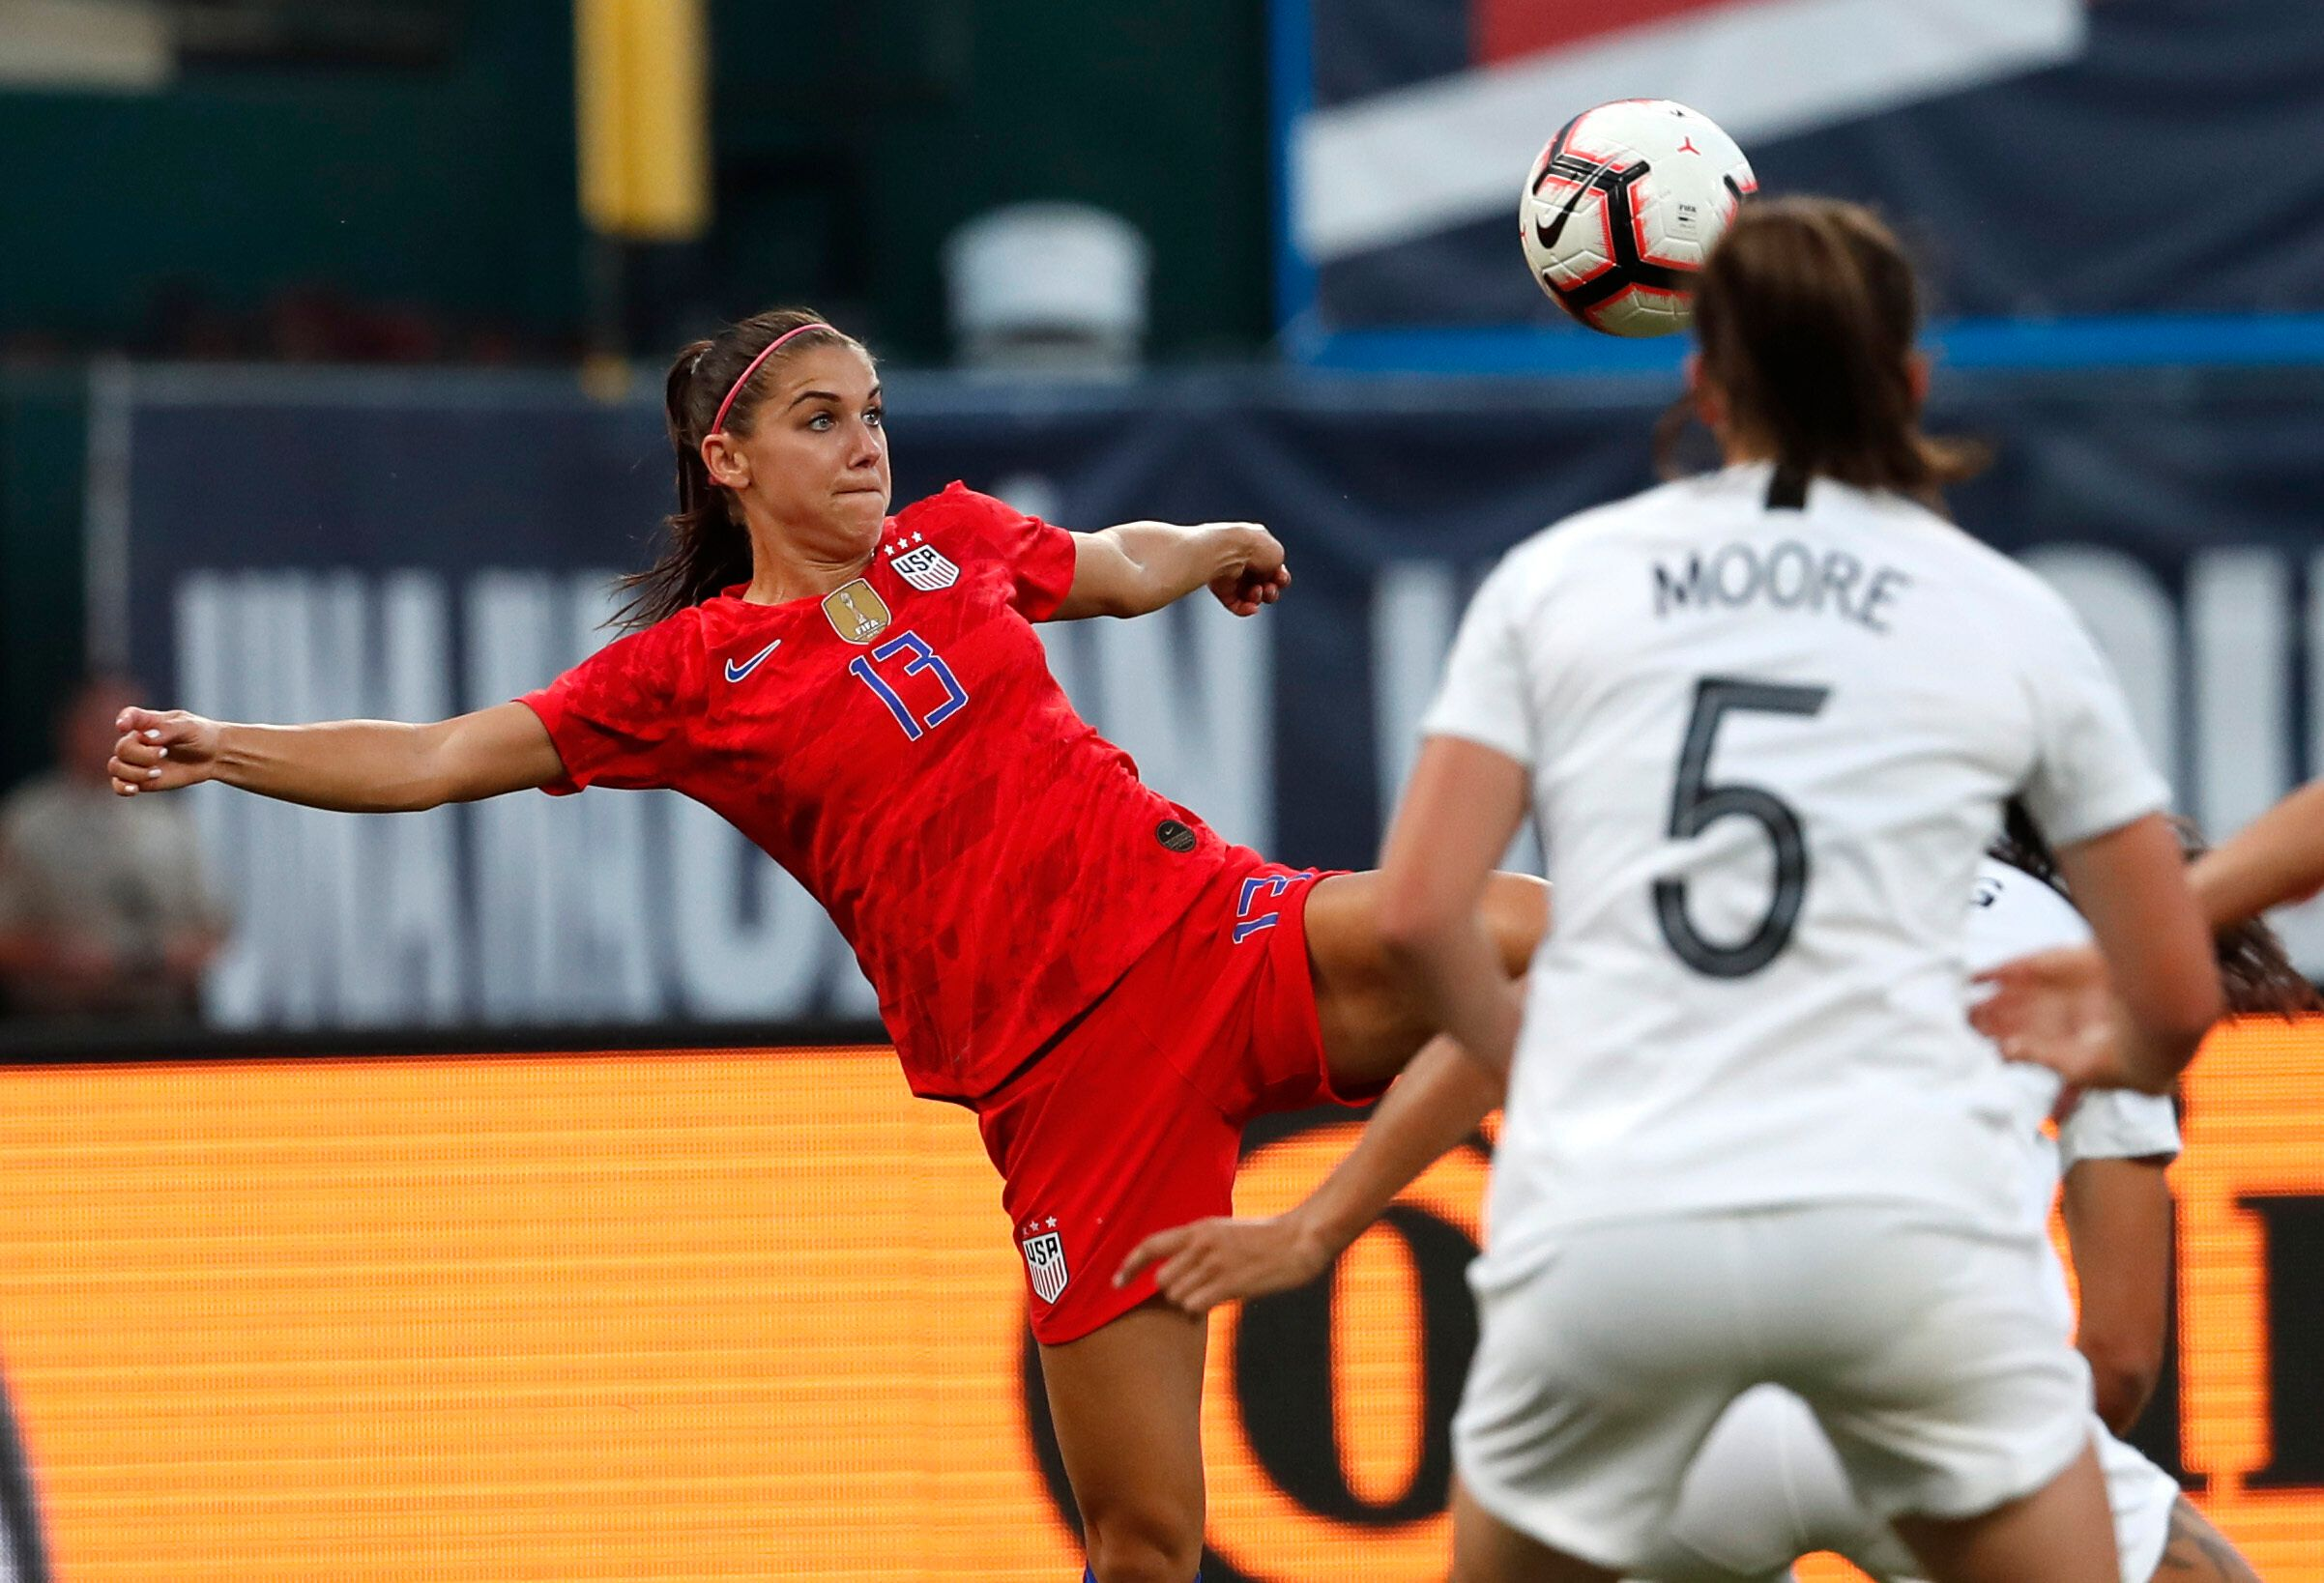 Alex Morgan (13) leads a talented U.S. attacking line that could carry the Americans to their fourth World Cup title.